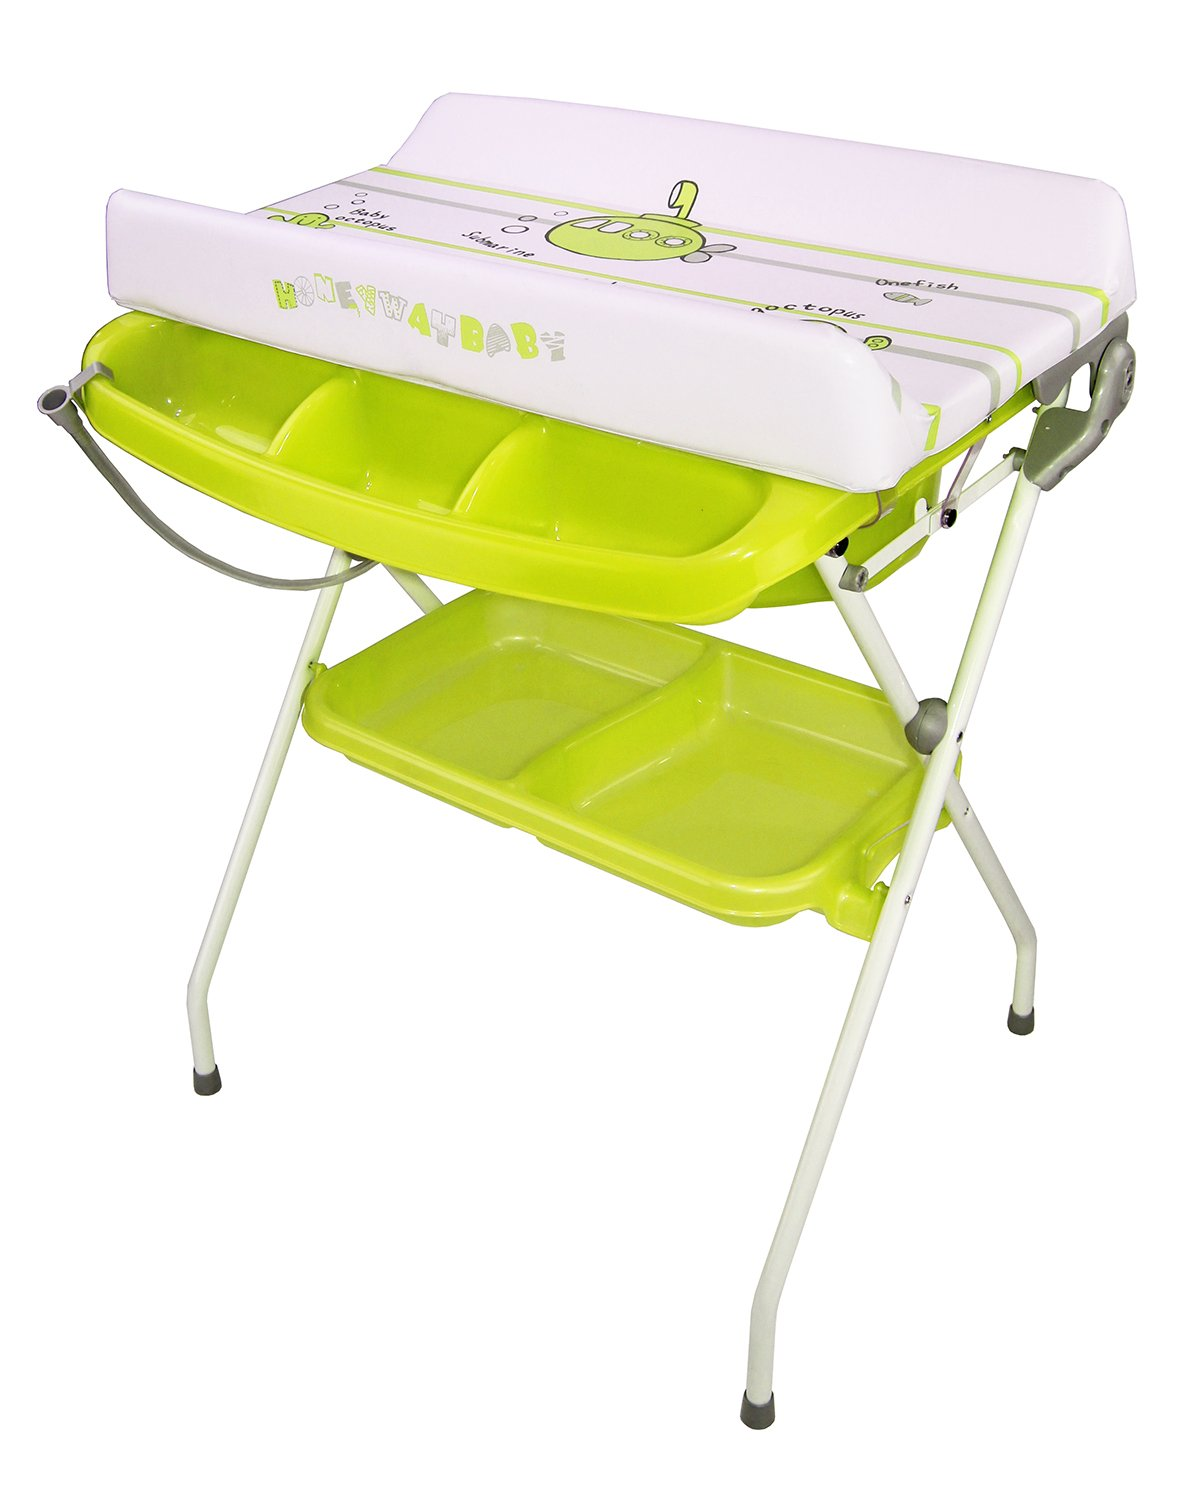 Amazon.com : Fold Down Baby Changing Table Apple Design (Green ...